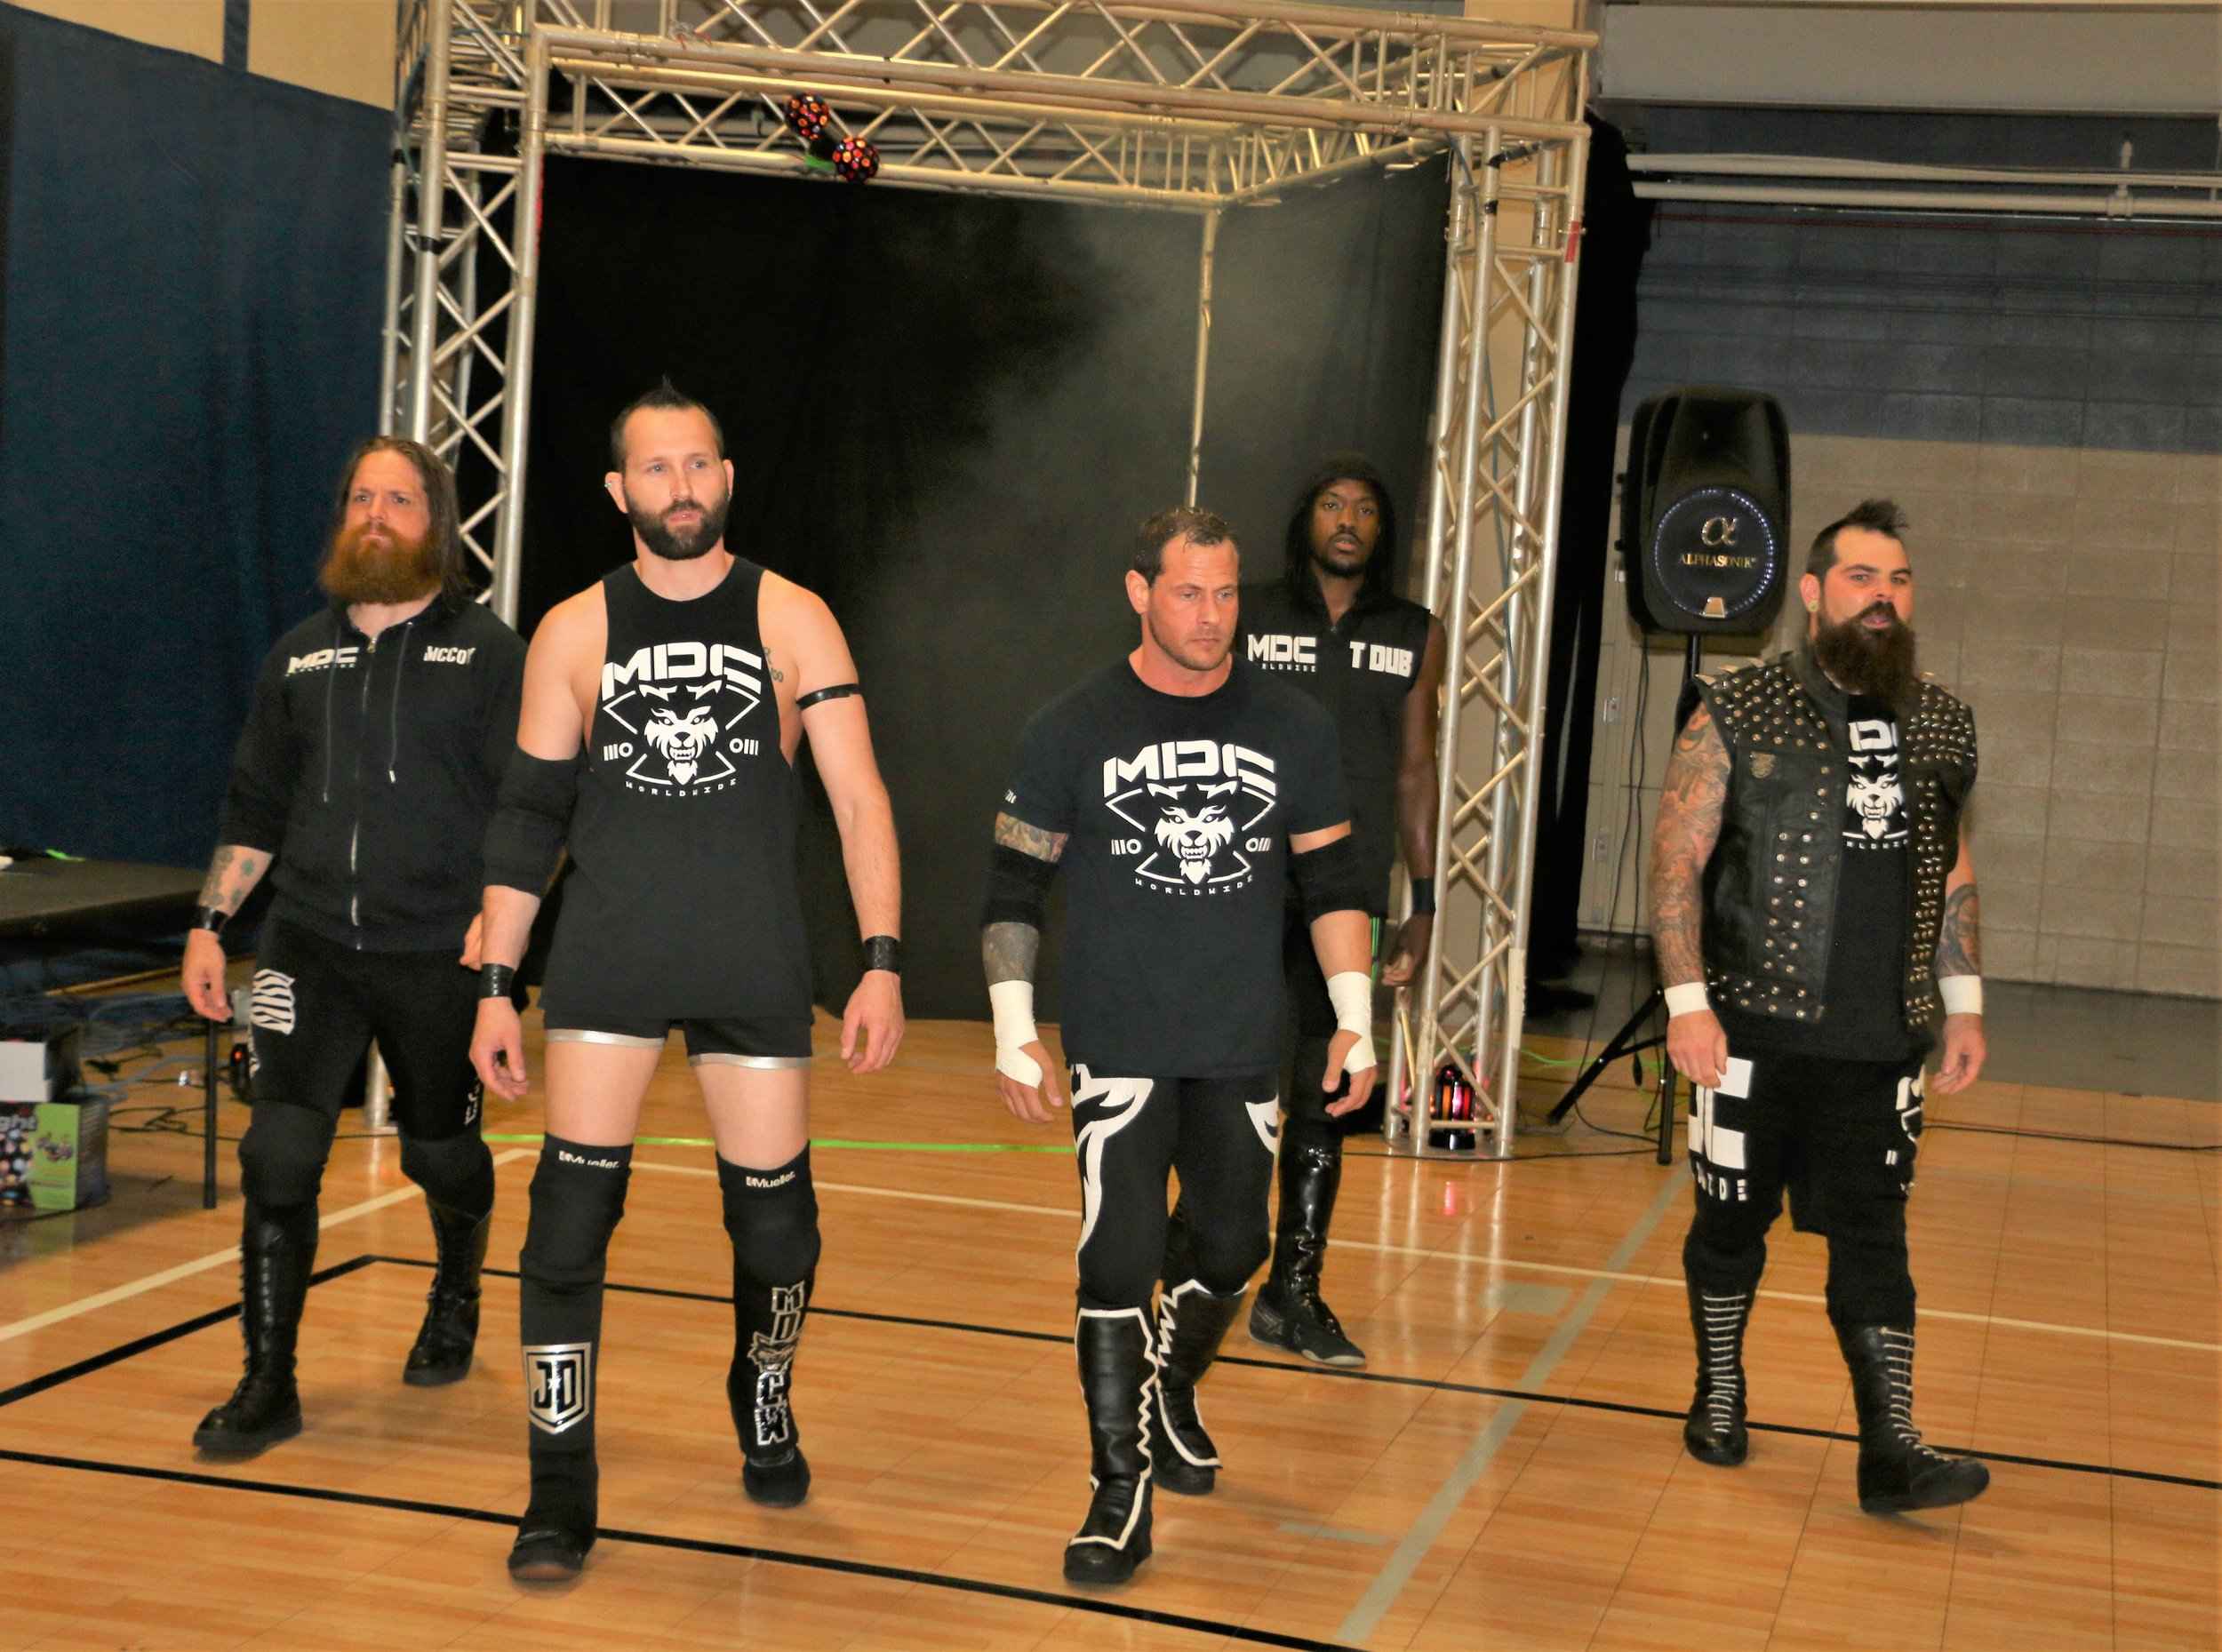 """Mad Dog Club Worldwide,"" featuring Ben McCoy, from left, Justin Dredd, Vic Capri, TW3 and Nick Colucci."